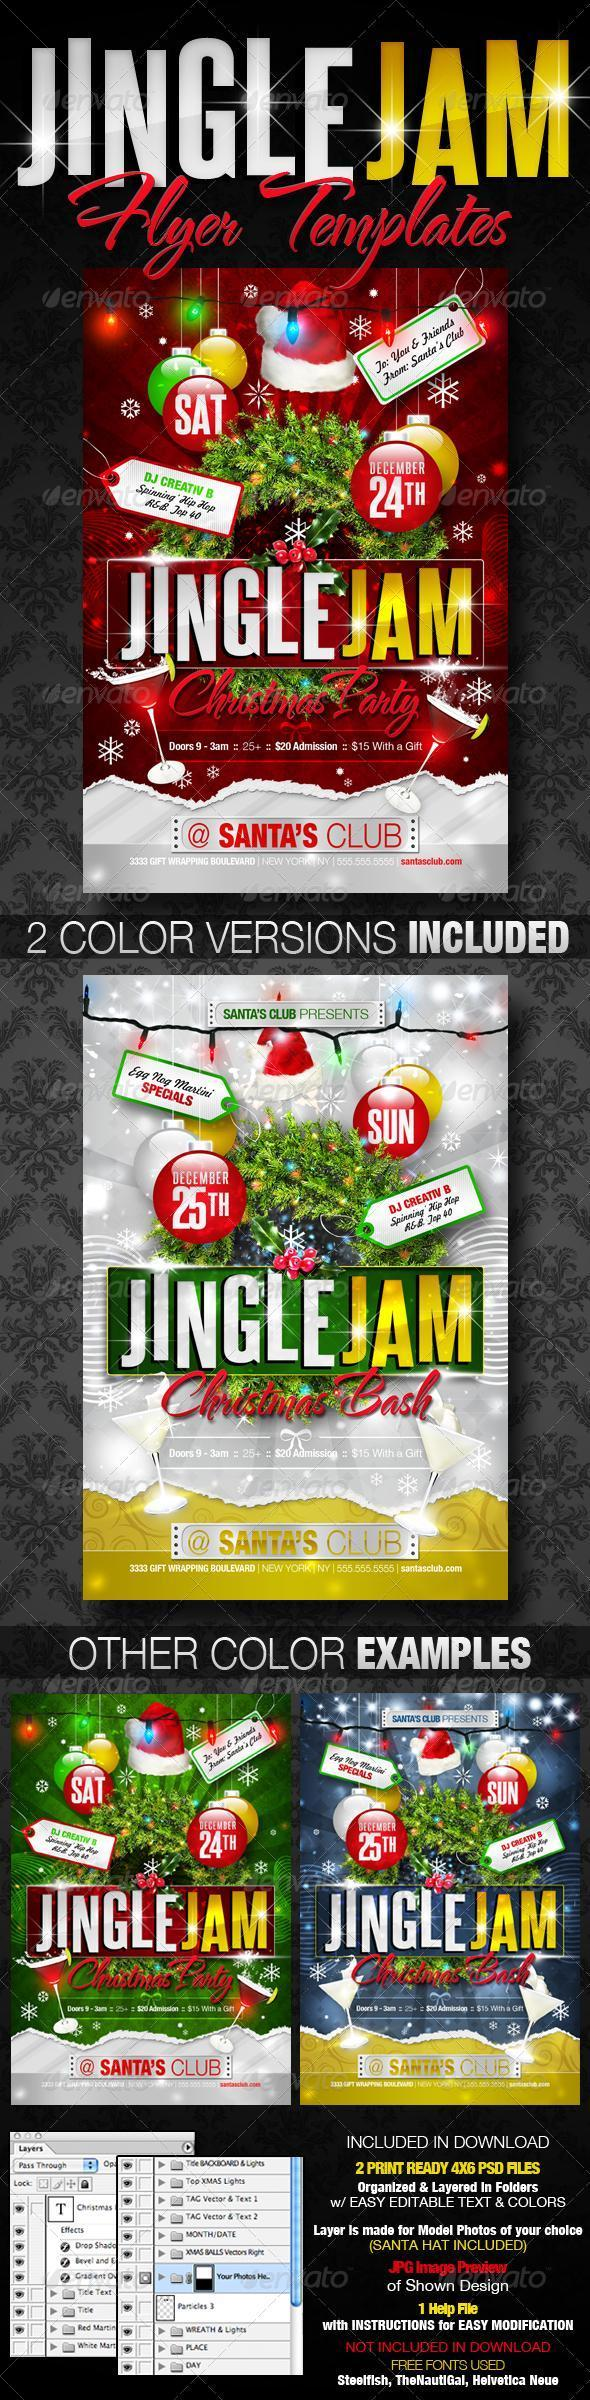 Jingle Jam Christmas Party Flyer Template